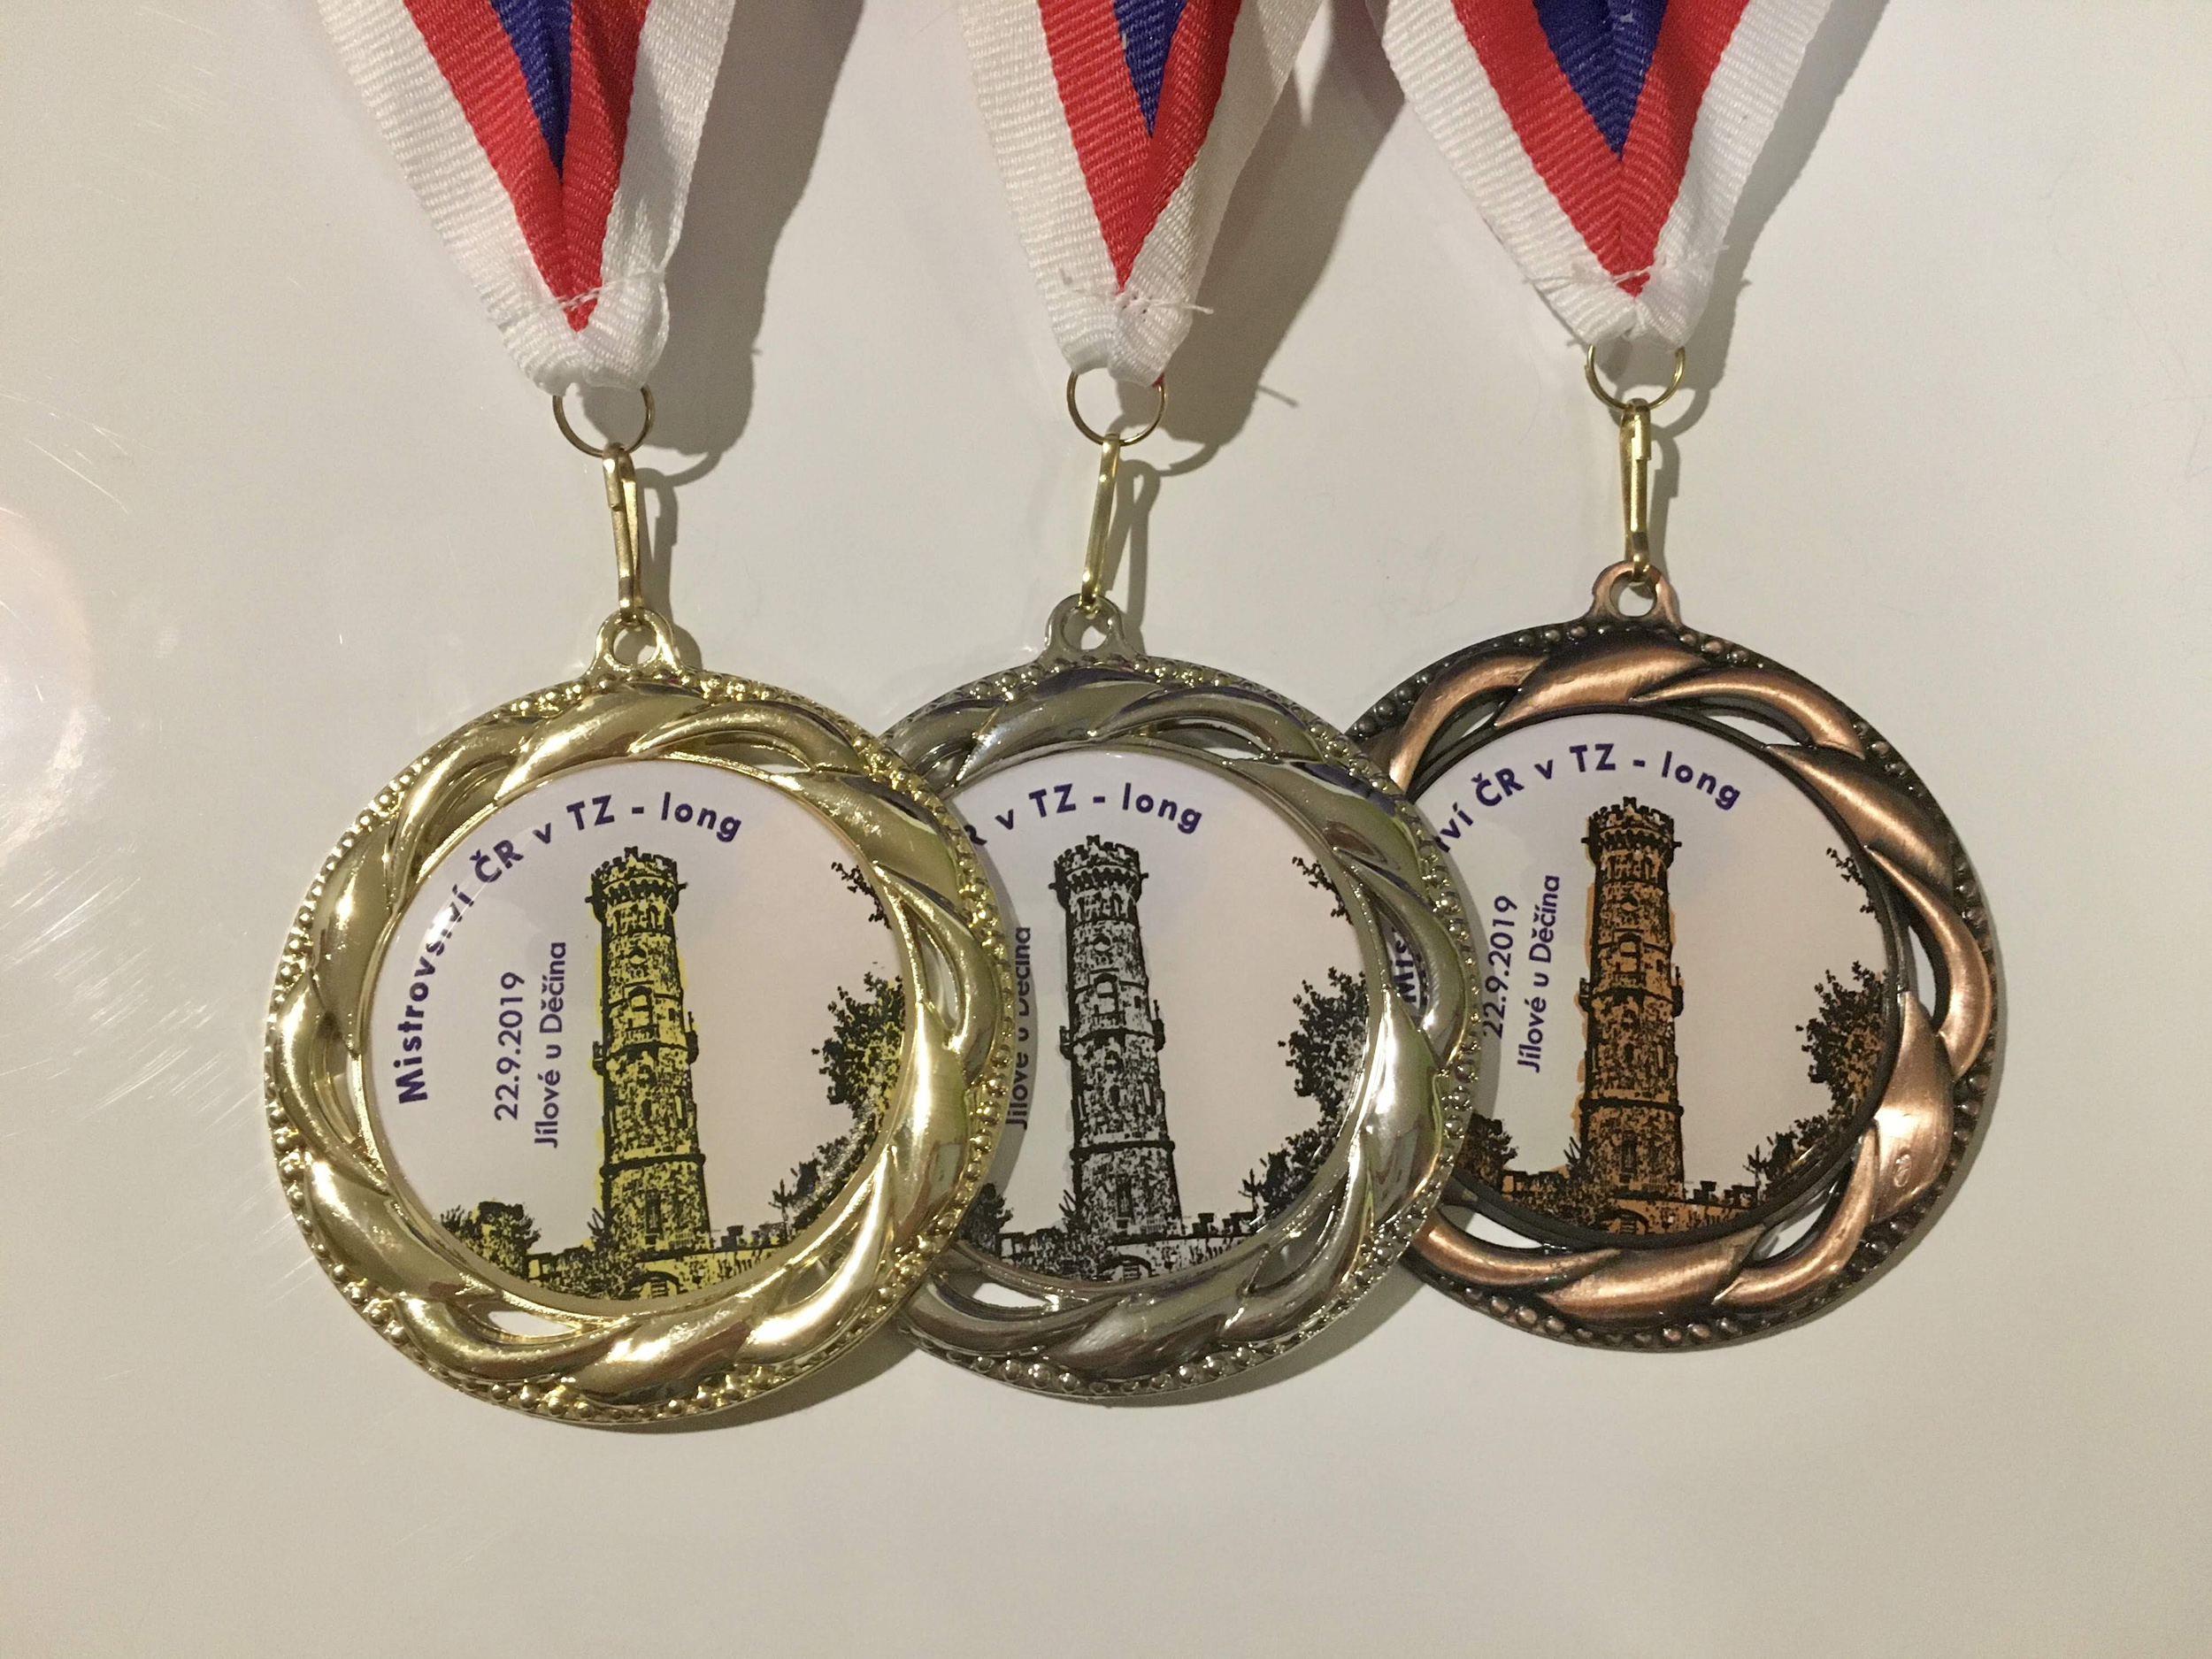 Medals for czech Championship in outdoor running